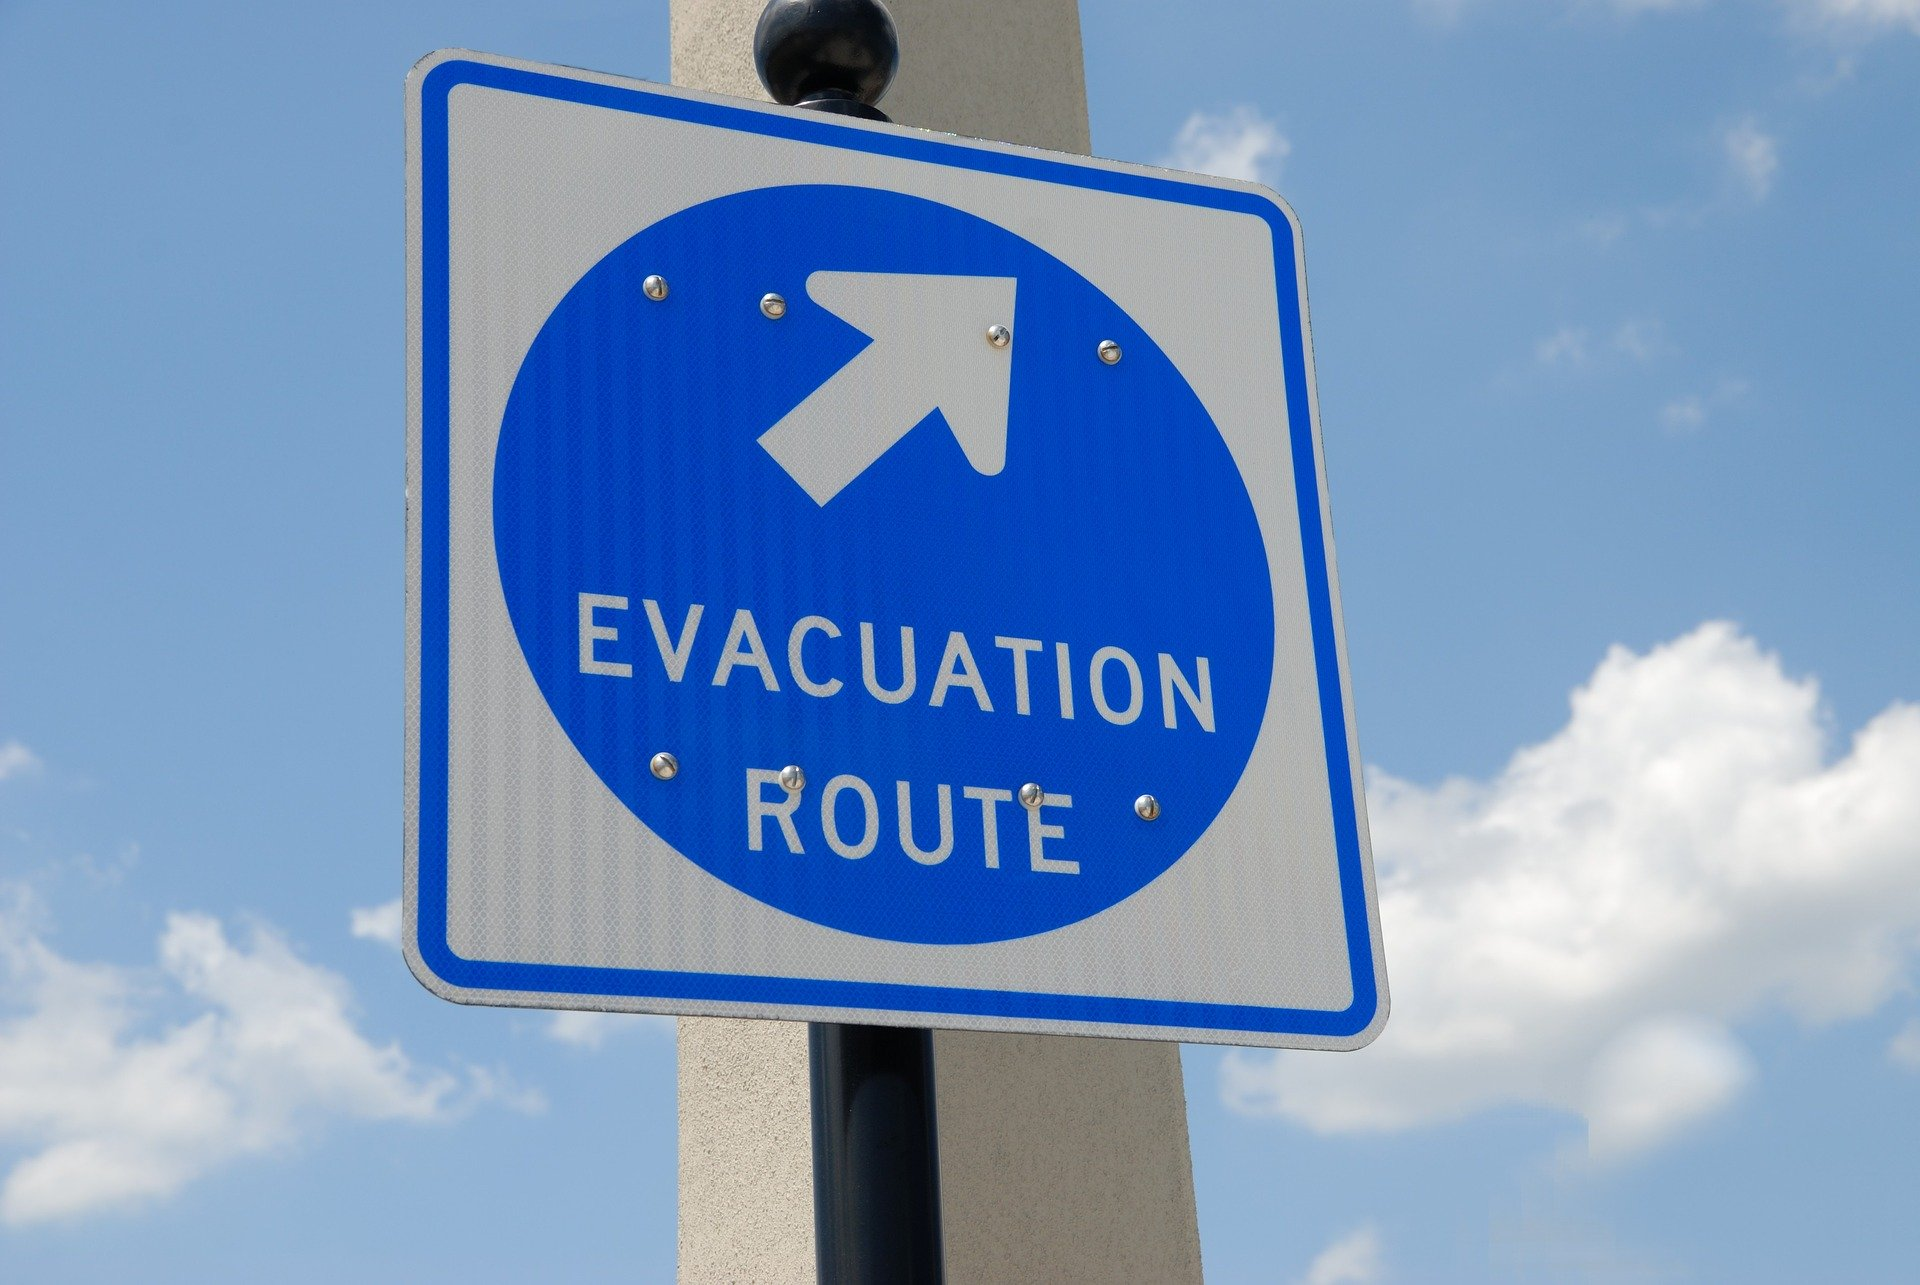 evacuation-sign-1738375_1920